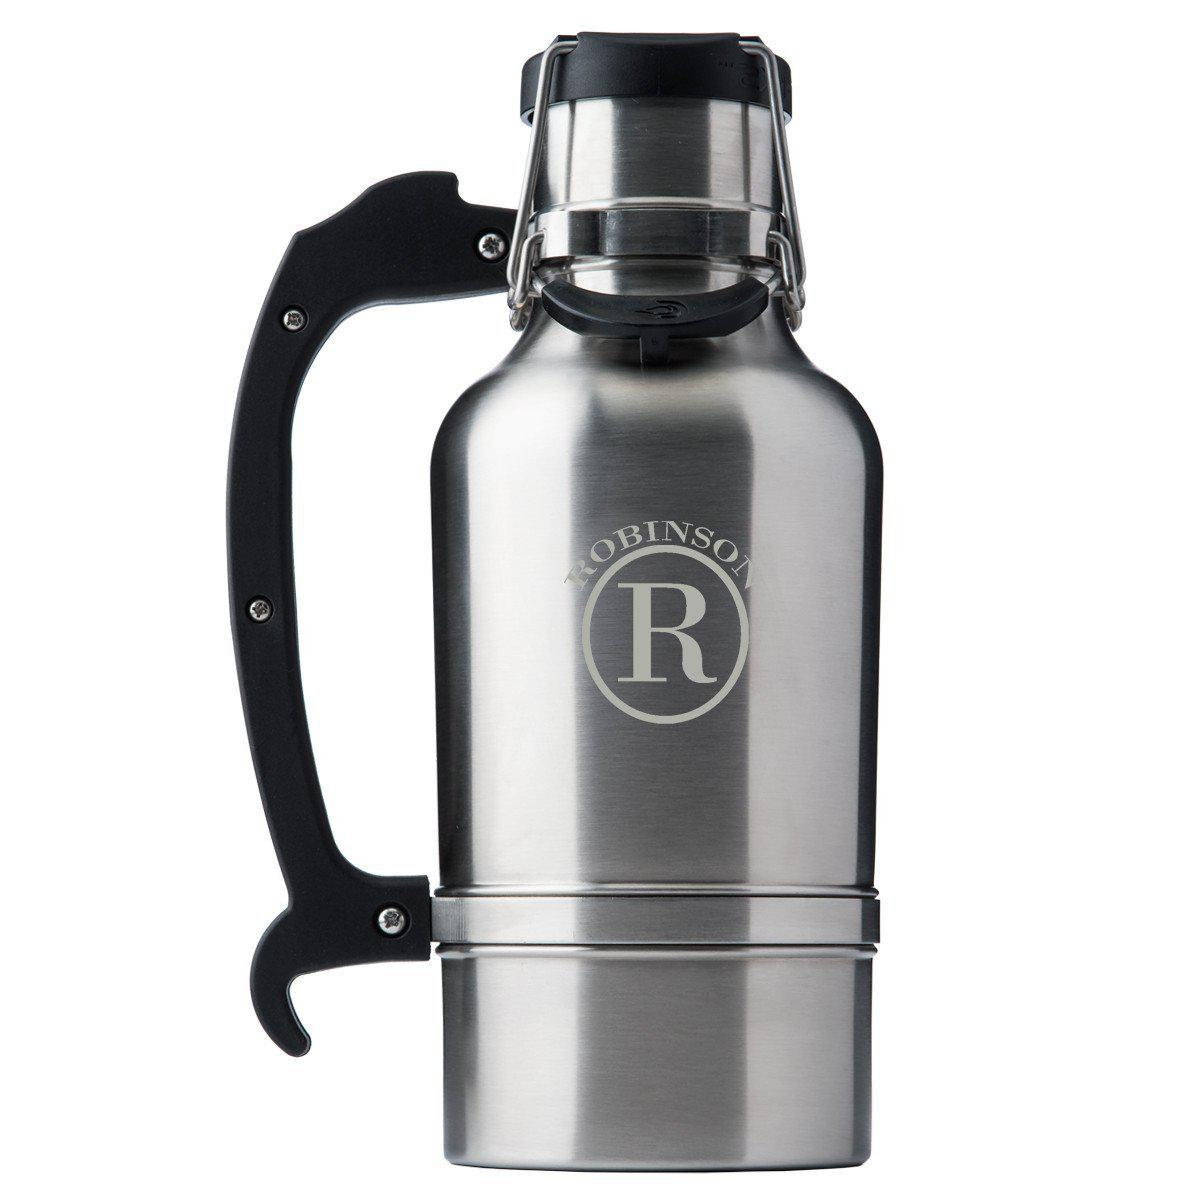 Personalized-Brushed-Stainless-DrinkTanks-64-oz-Insulated-Growler